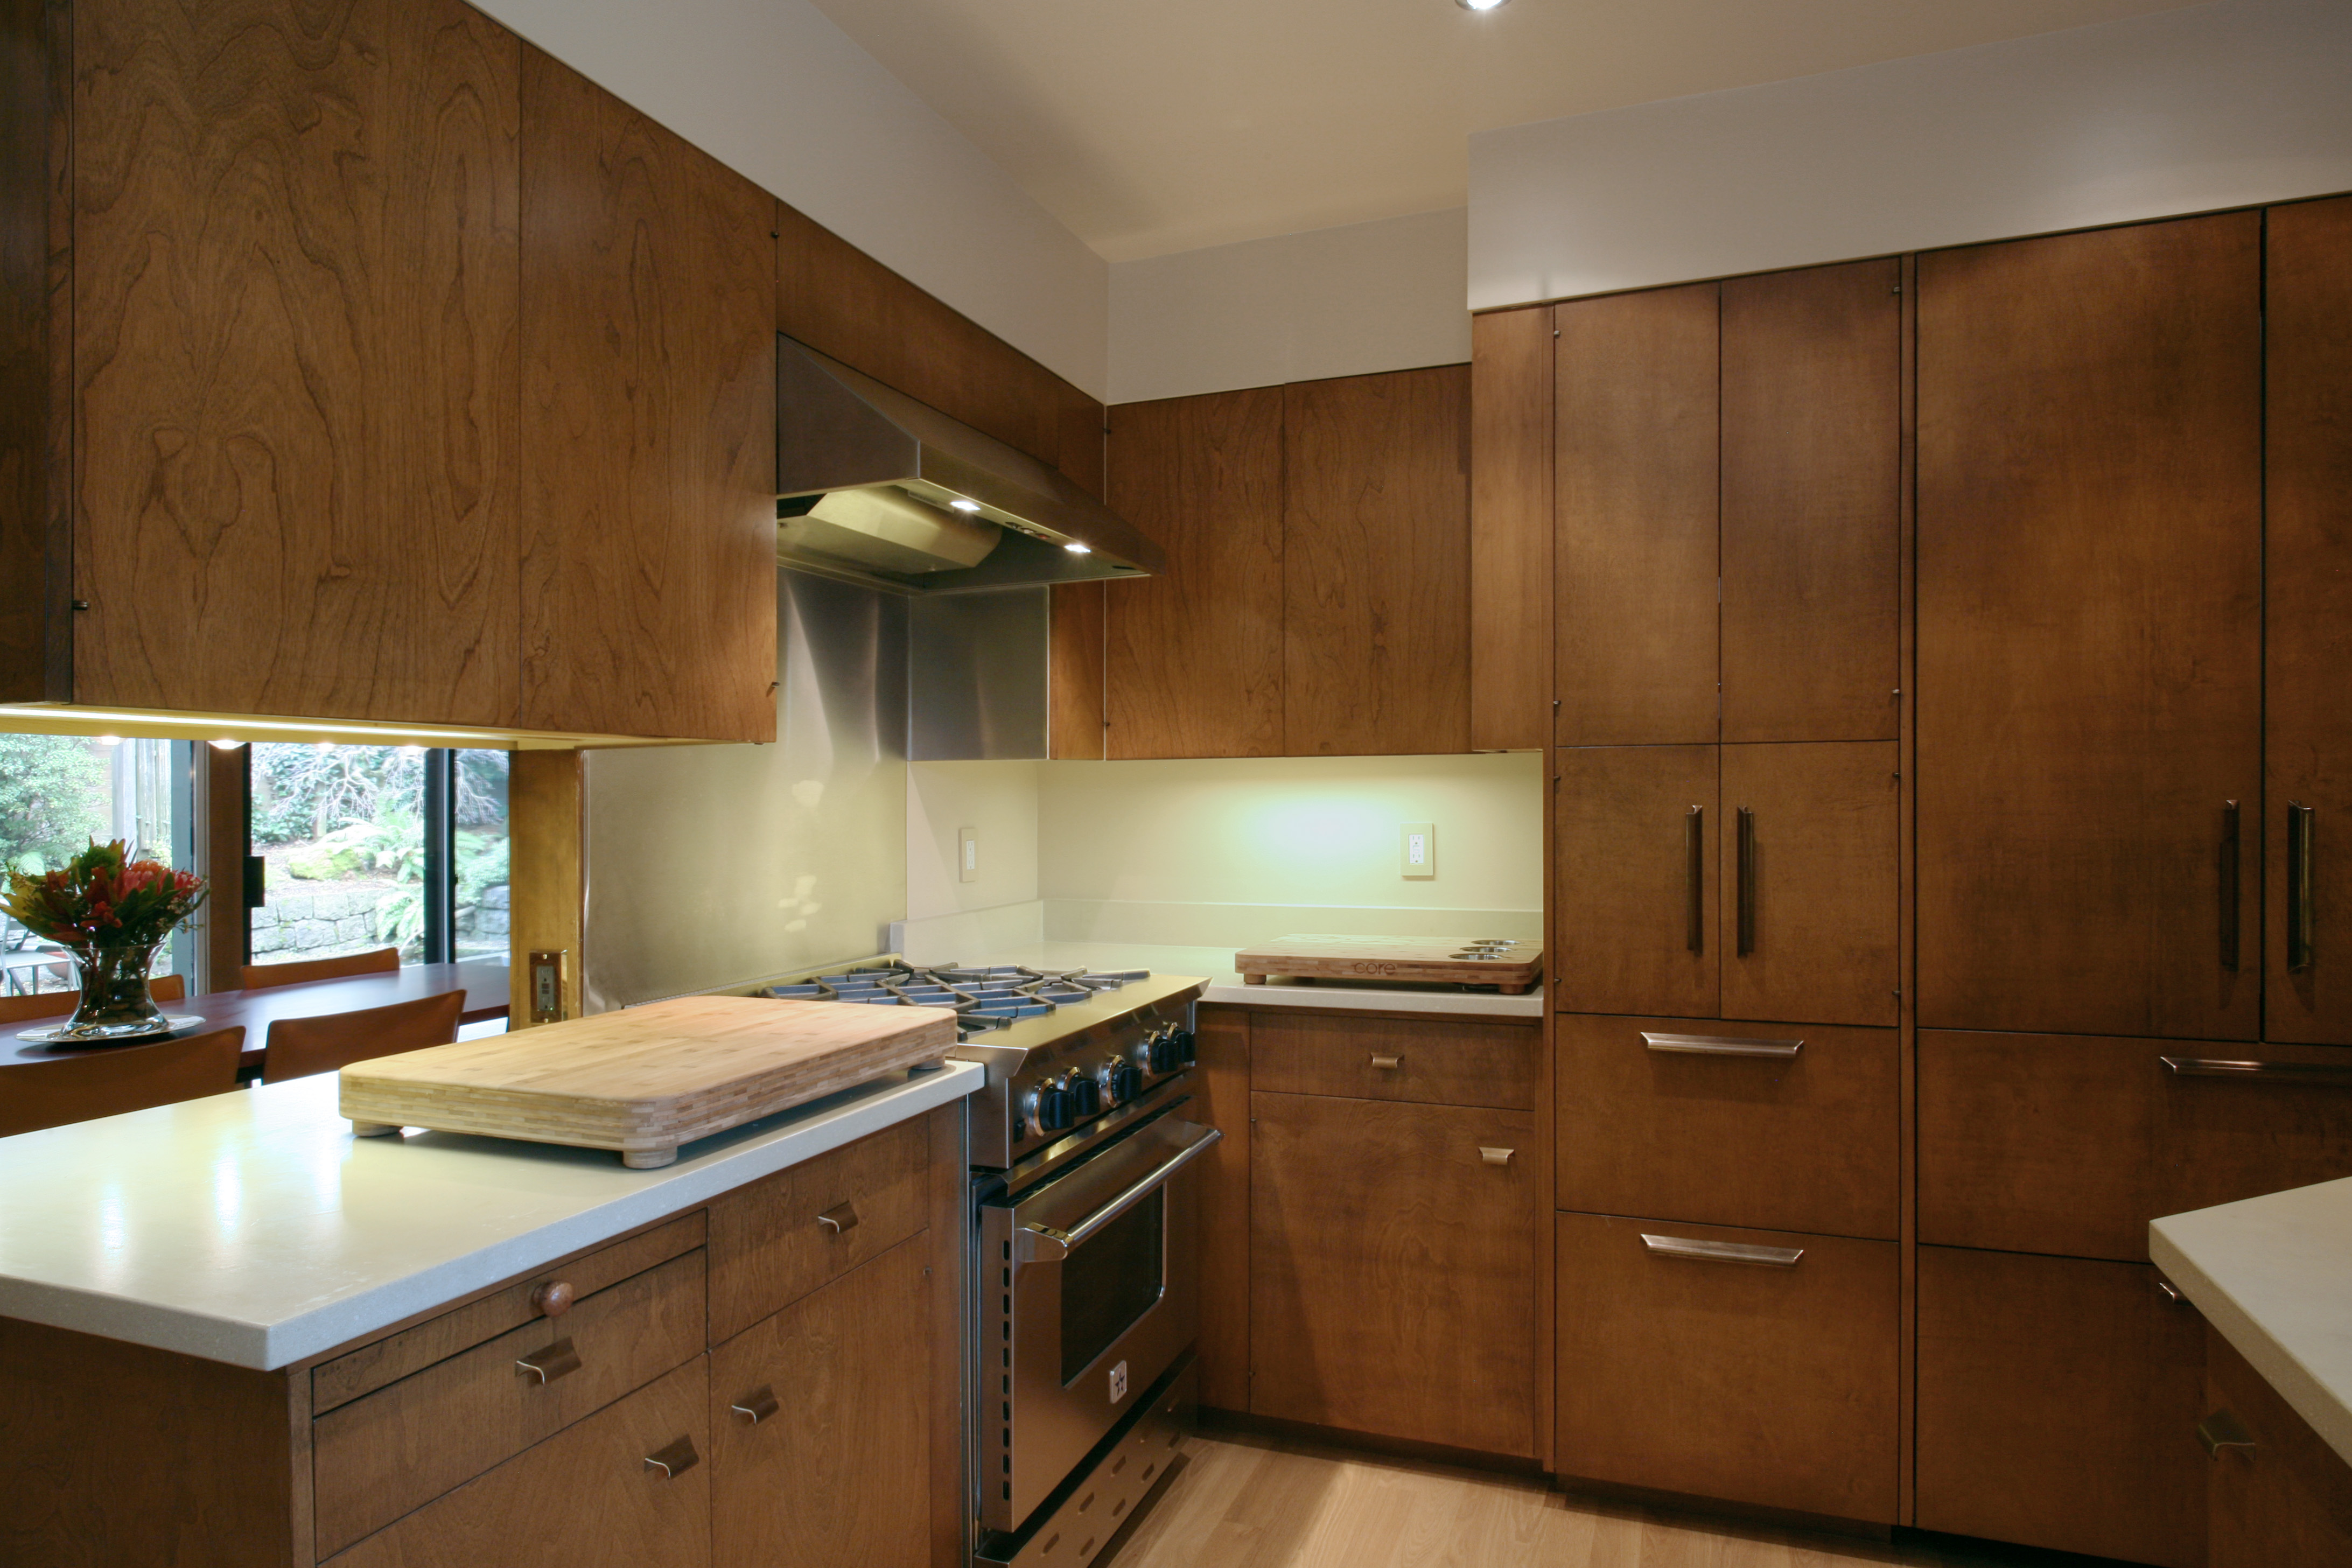 period kitchens the 50s and 60s laminate kitchen cabinets Jacobson Kitchen A 1 P